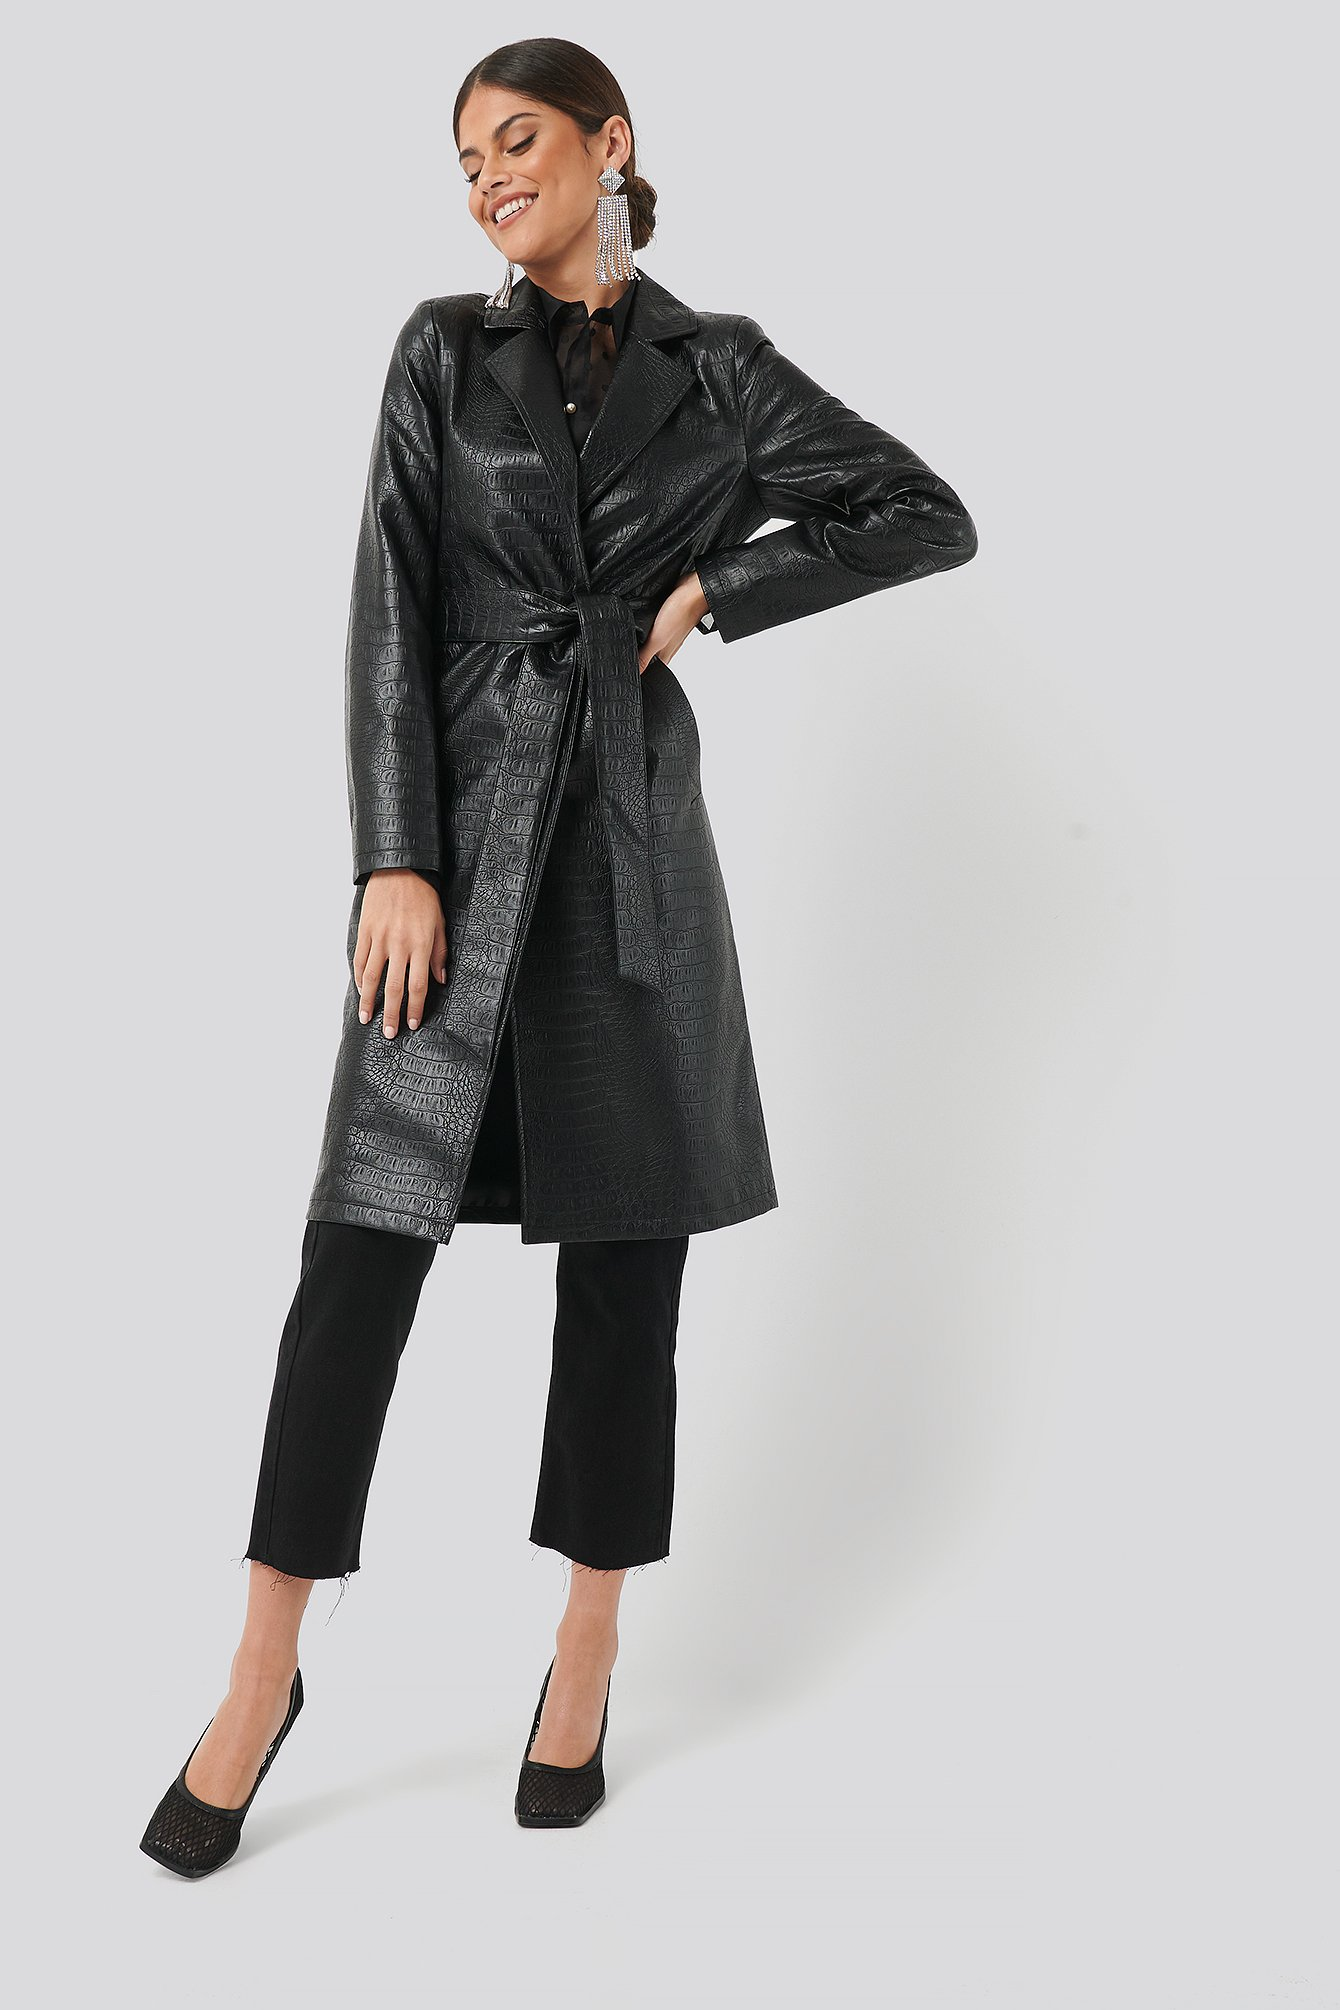 chloé b x na-kd -  Croc Long Jacket - Black